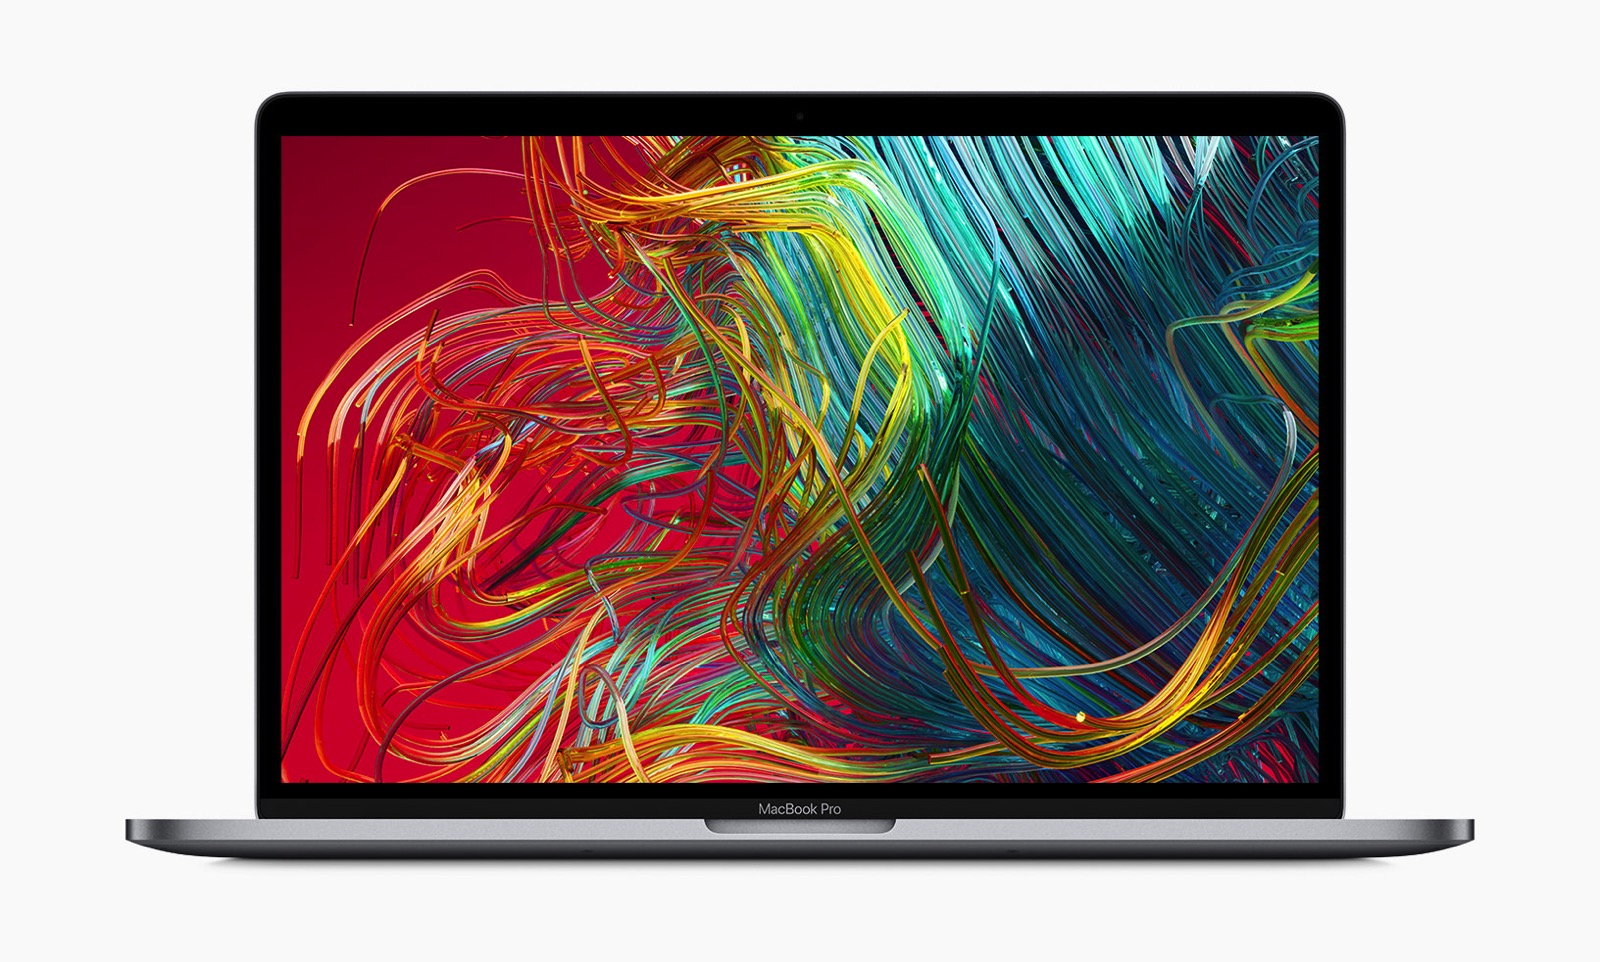 Apple macbookpro 8 core display 05212019